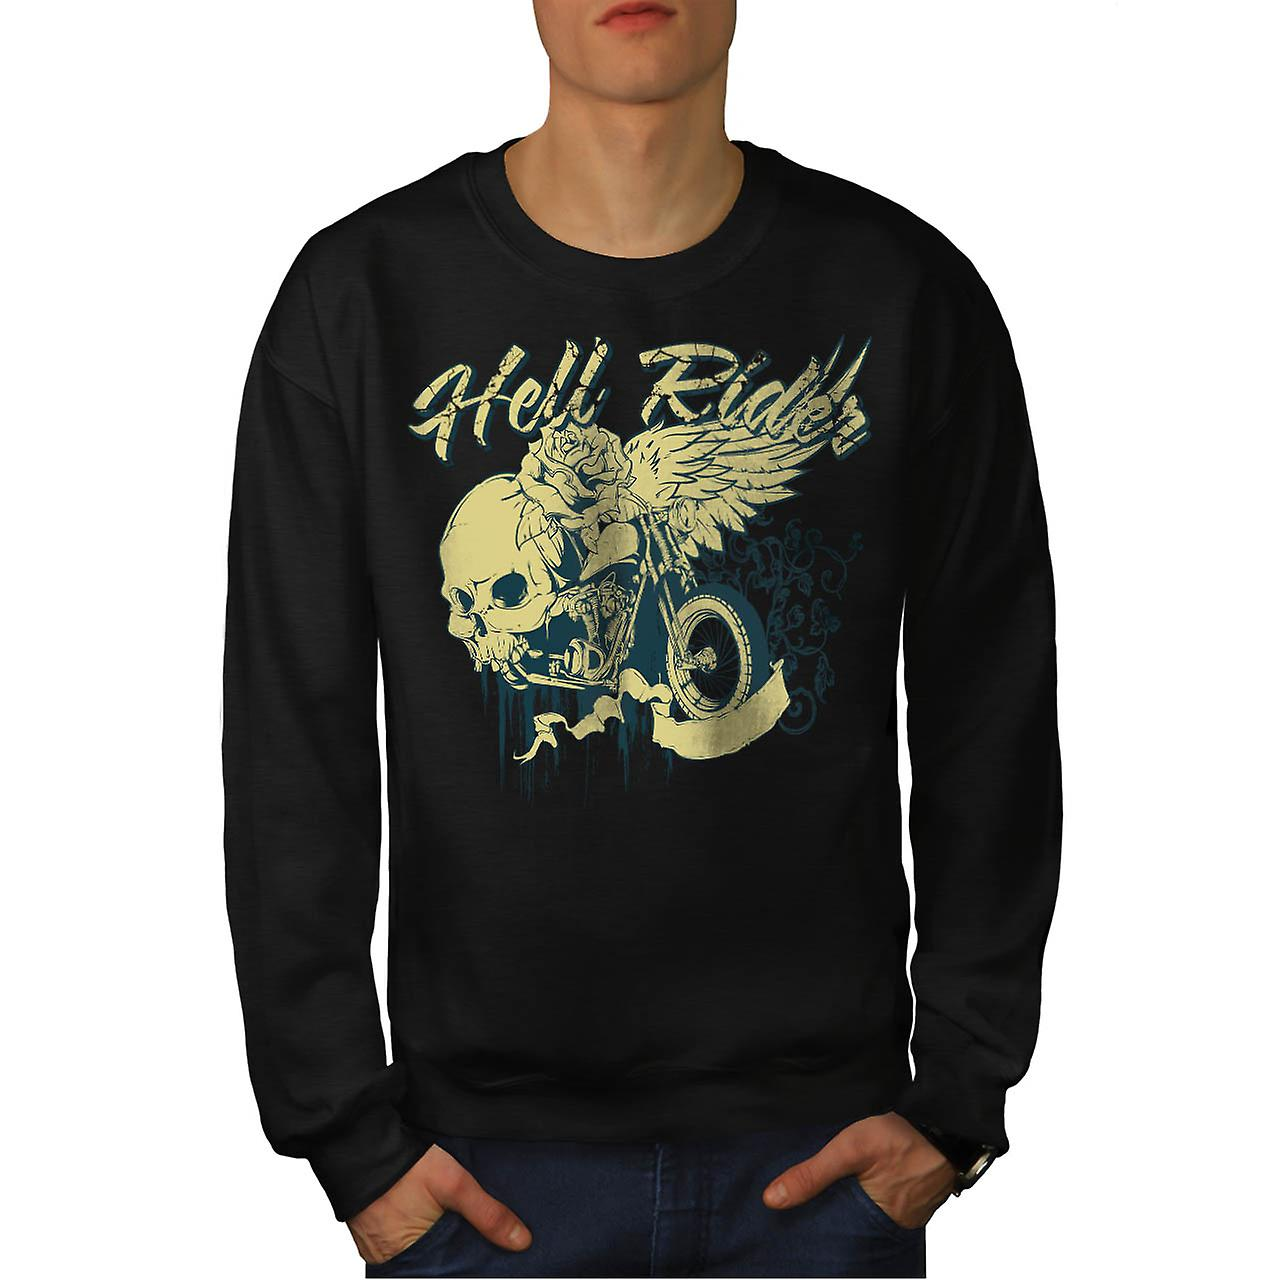 Hell Rider Biker Life Rose Skull Men Black Sweatshirt | Wellcoda